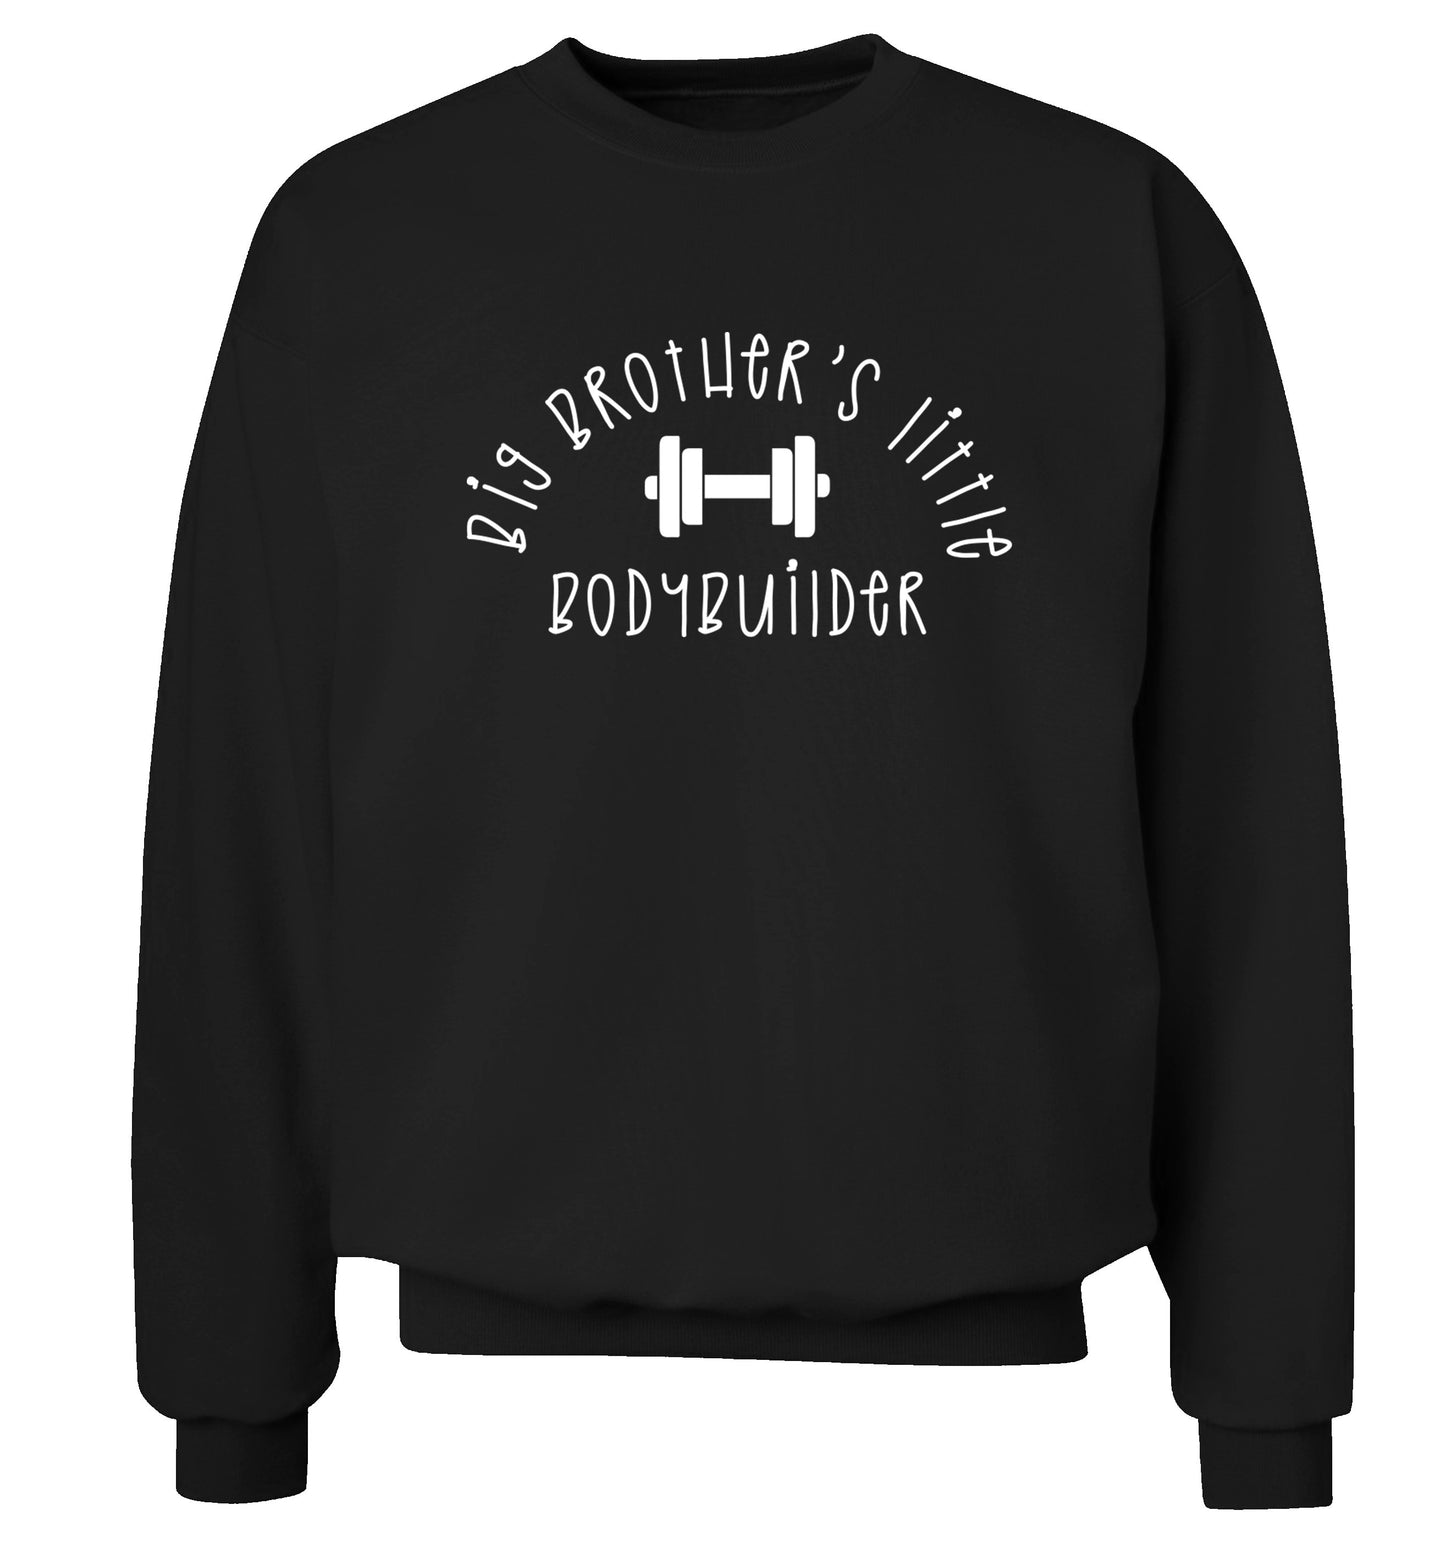 Big brother's little bodybuilder Adult's unisex black Sweater 2XL